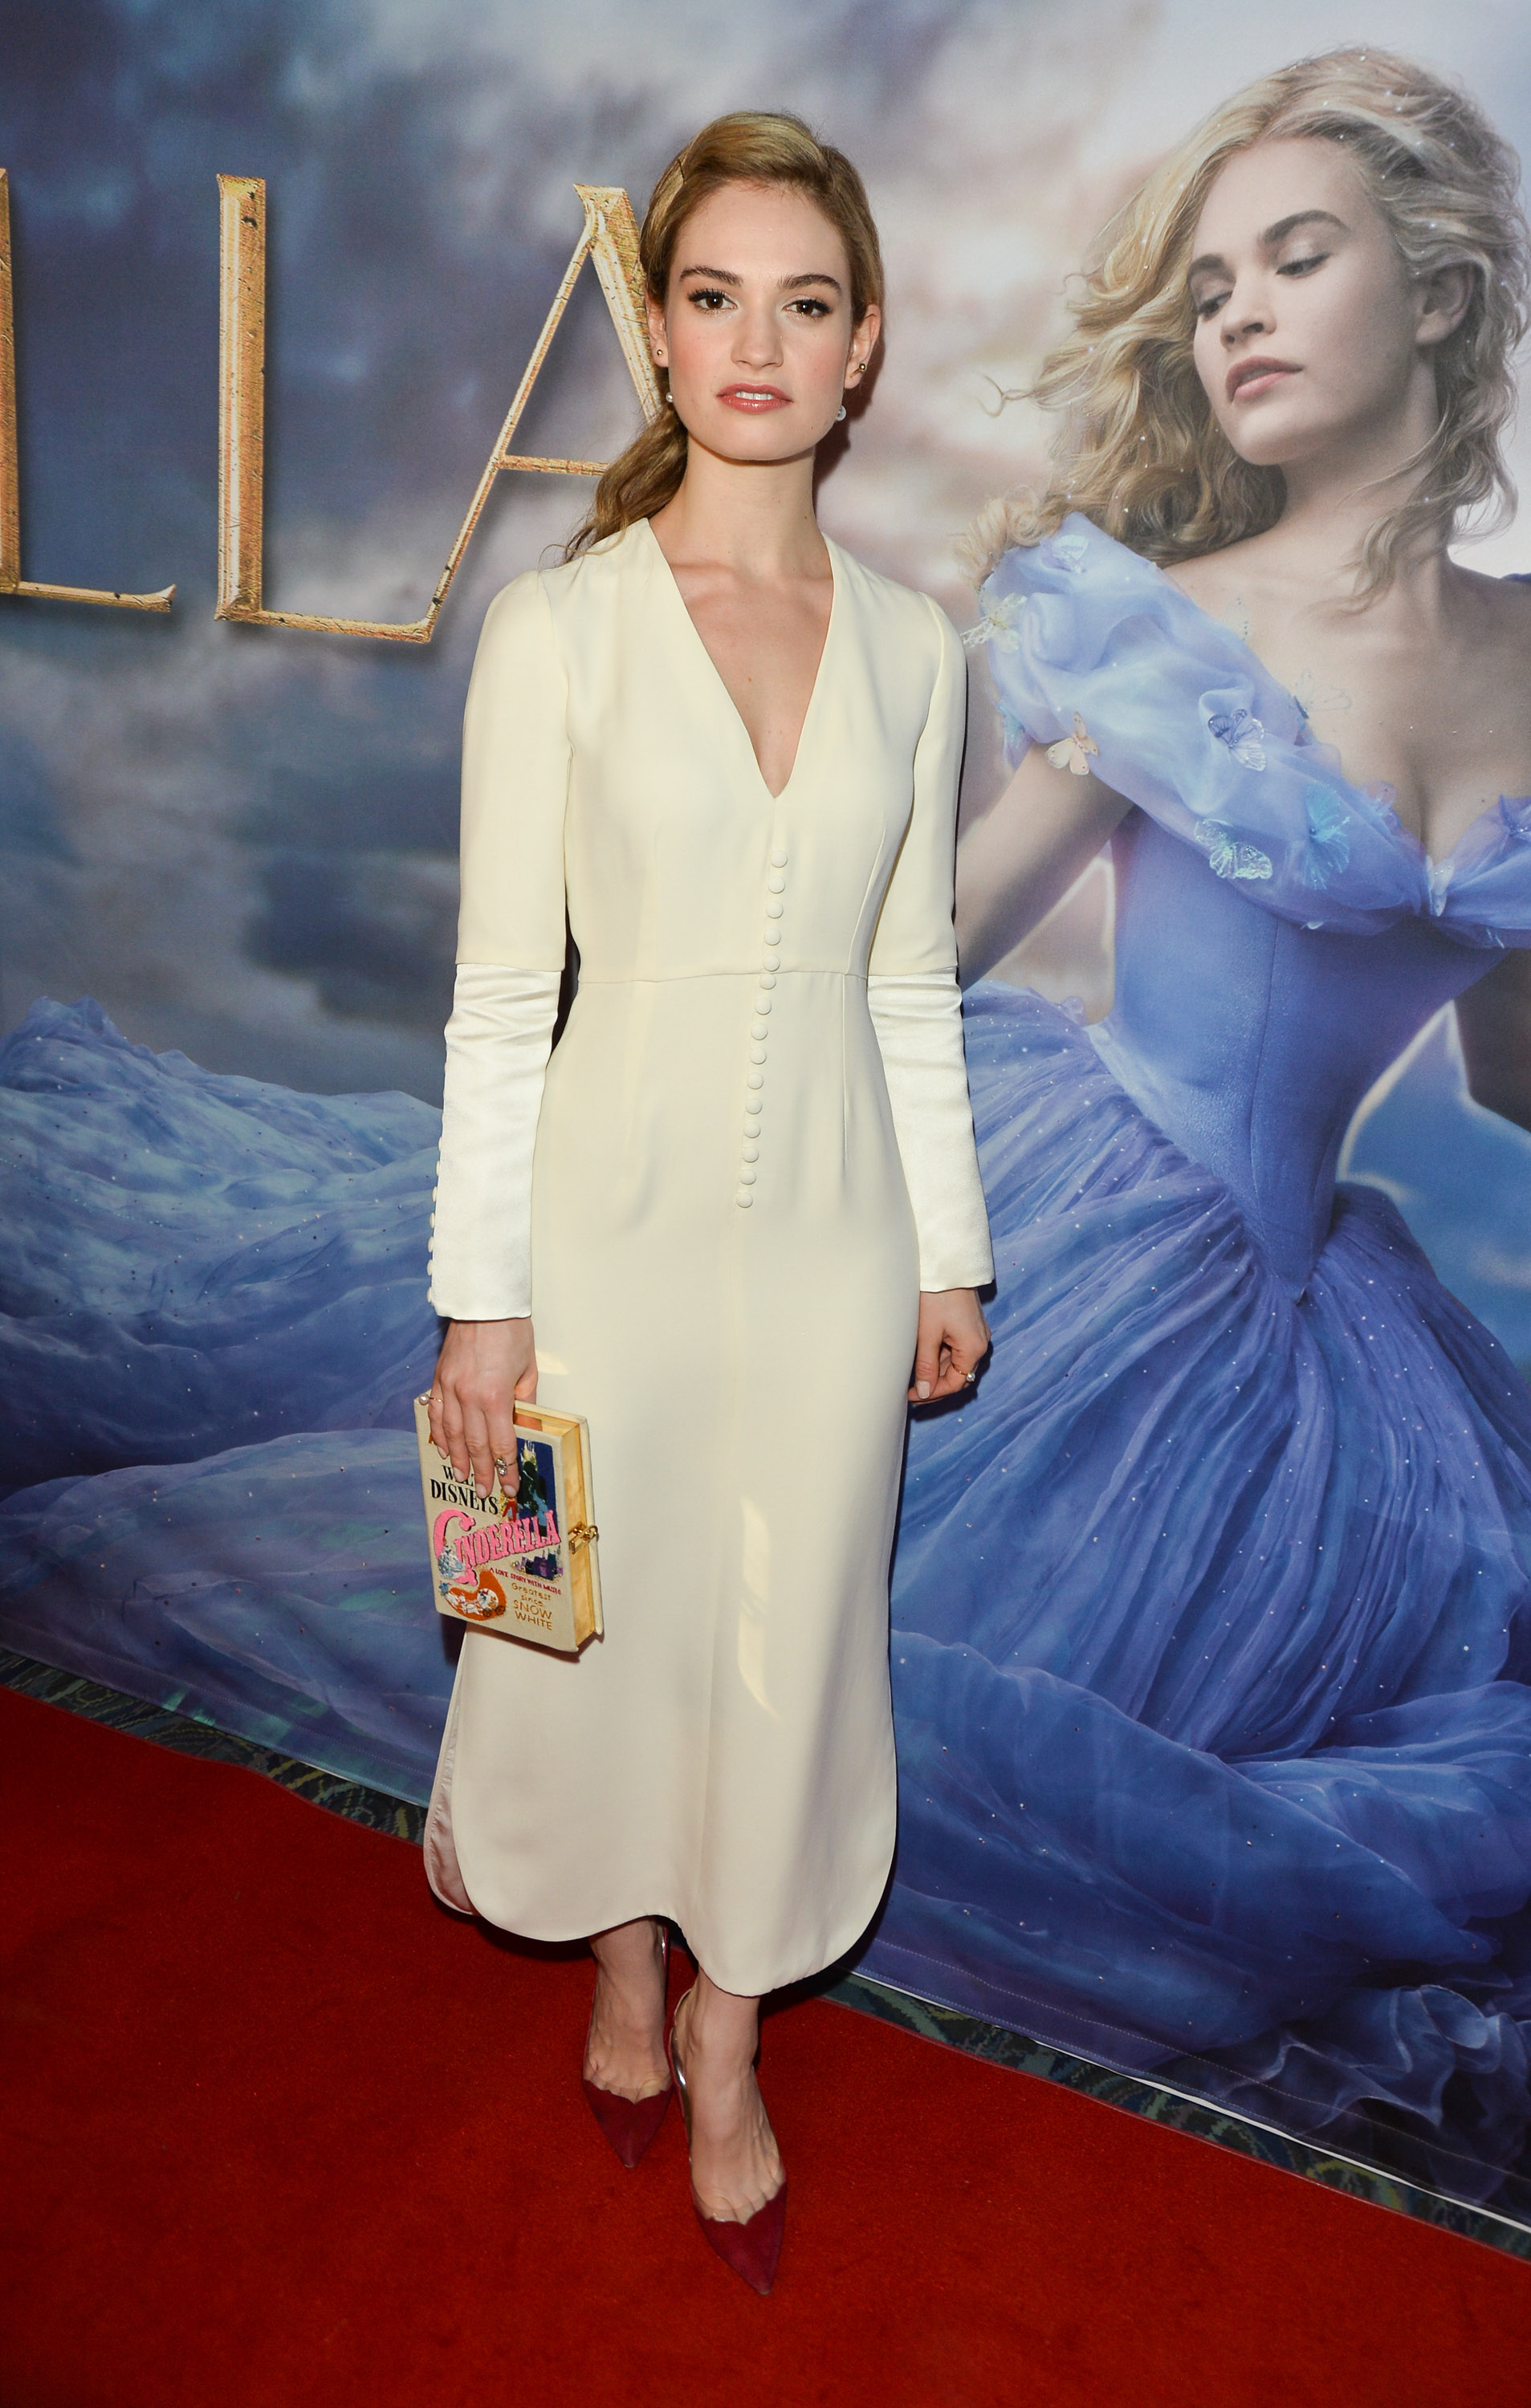 Lily James Promoting